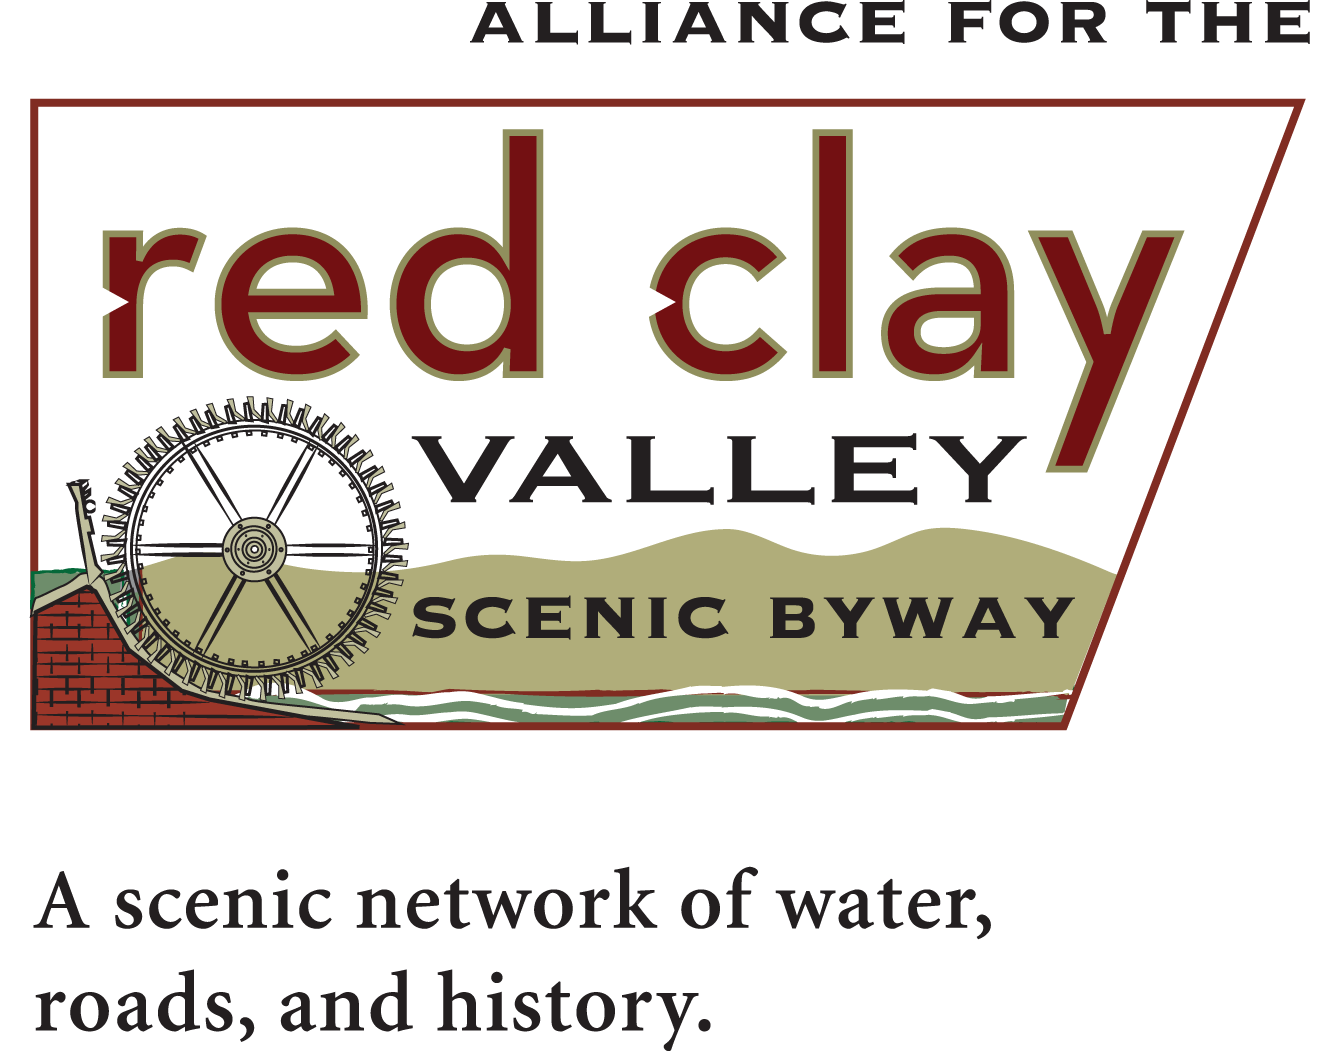 Red Clay Valley Logo